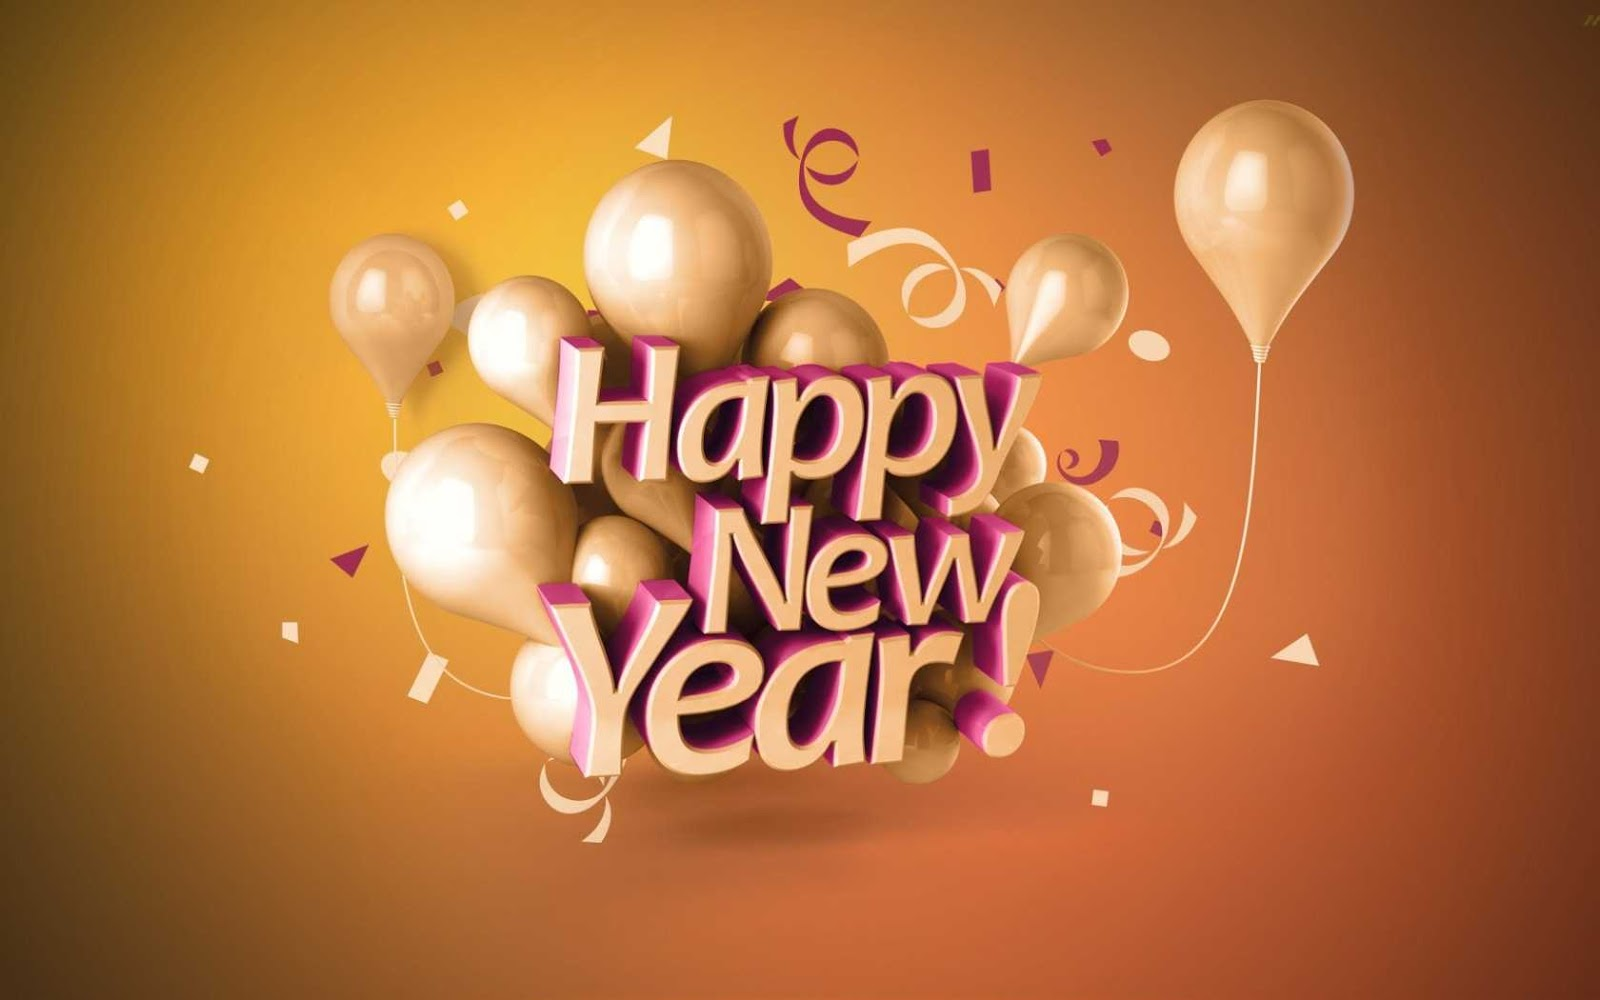 Happy New Year 2018 Wishes New Year Wishes Images Happy New Year